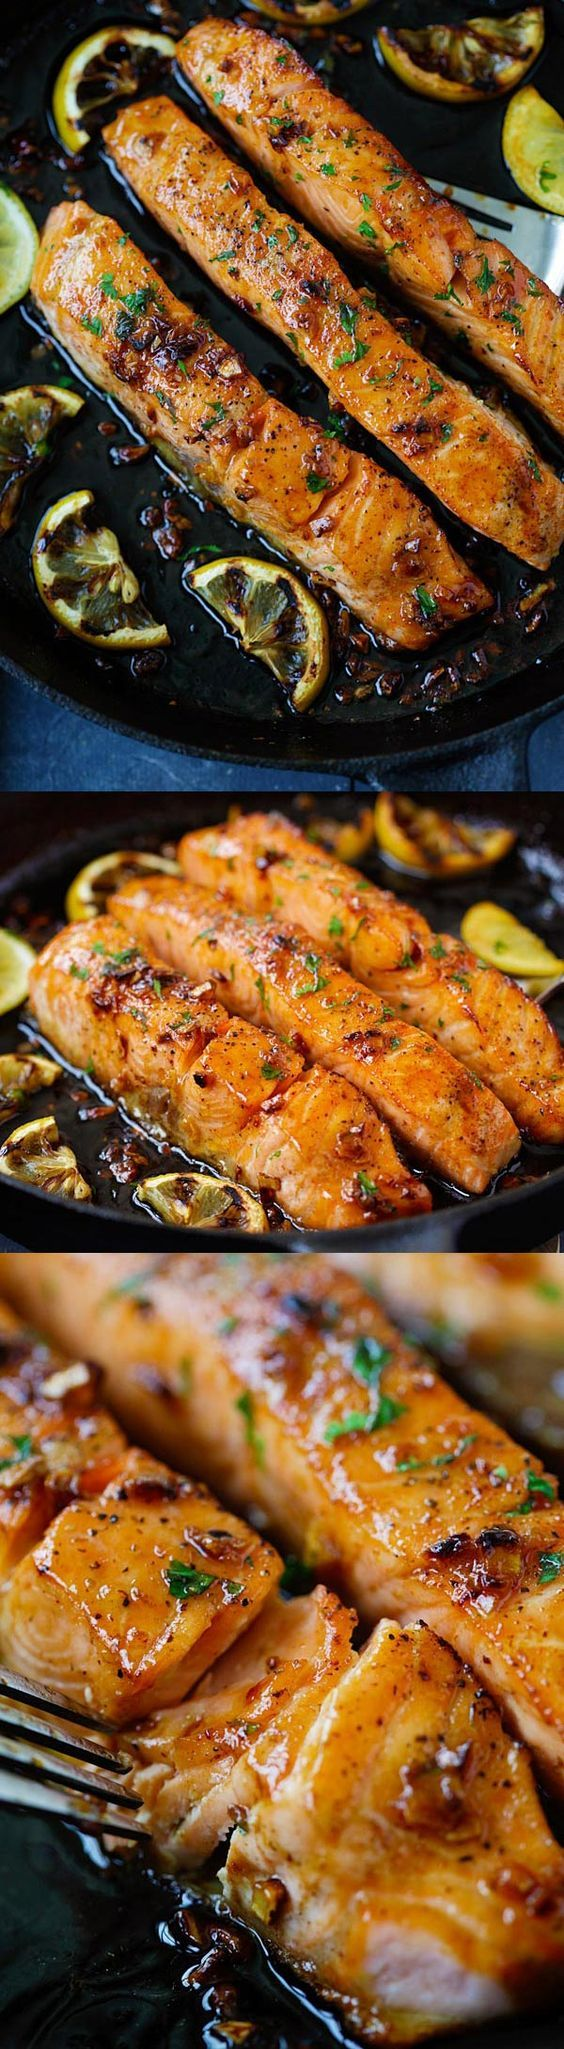 Honey Garlic Salmon by rasamalaysia: Garlicky, sweet and sticky salmon with simple ingredients. Takes 20 mins, so good and great for tonight's dinner. #Salmon #Honey_Garlic #Healthy #Quick #Easy